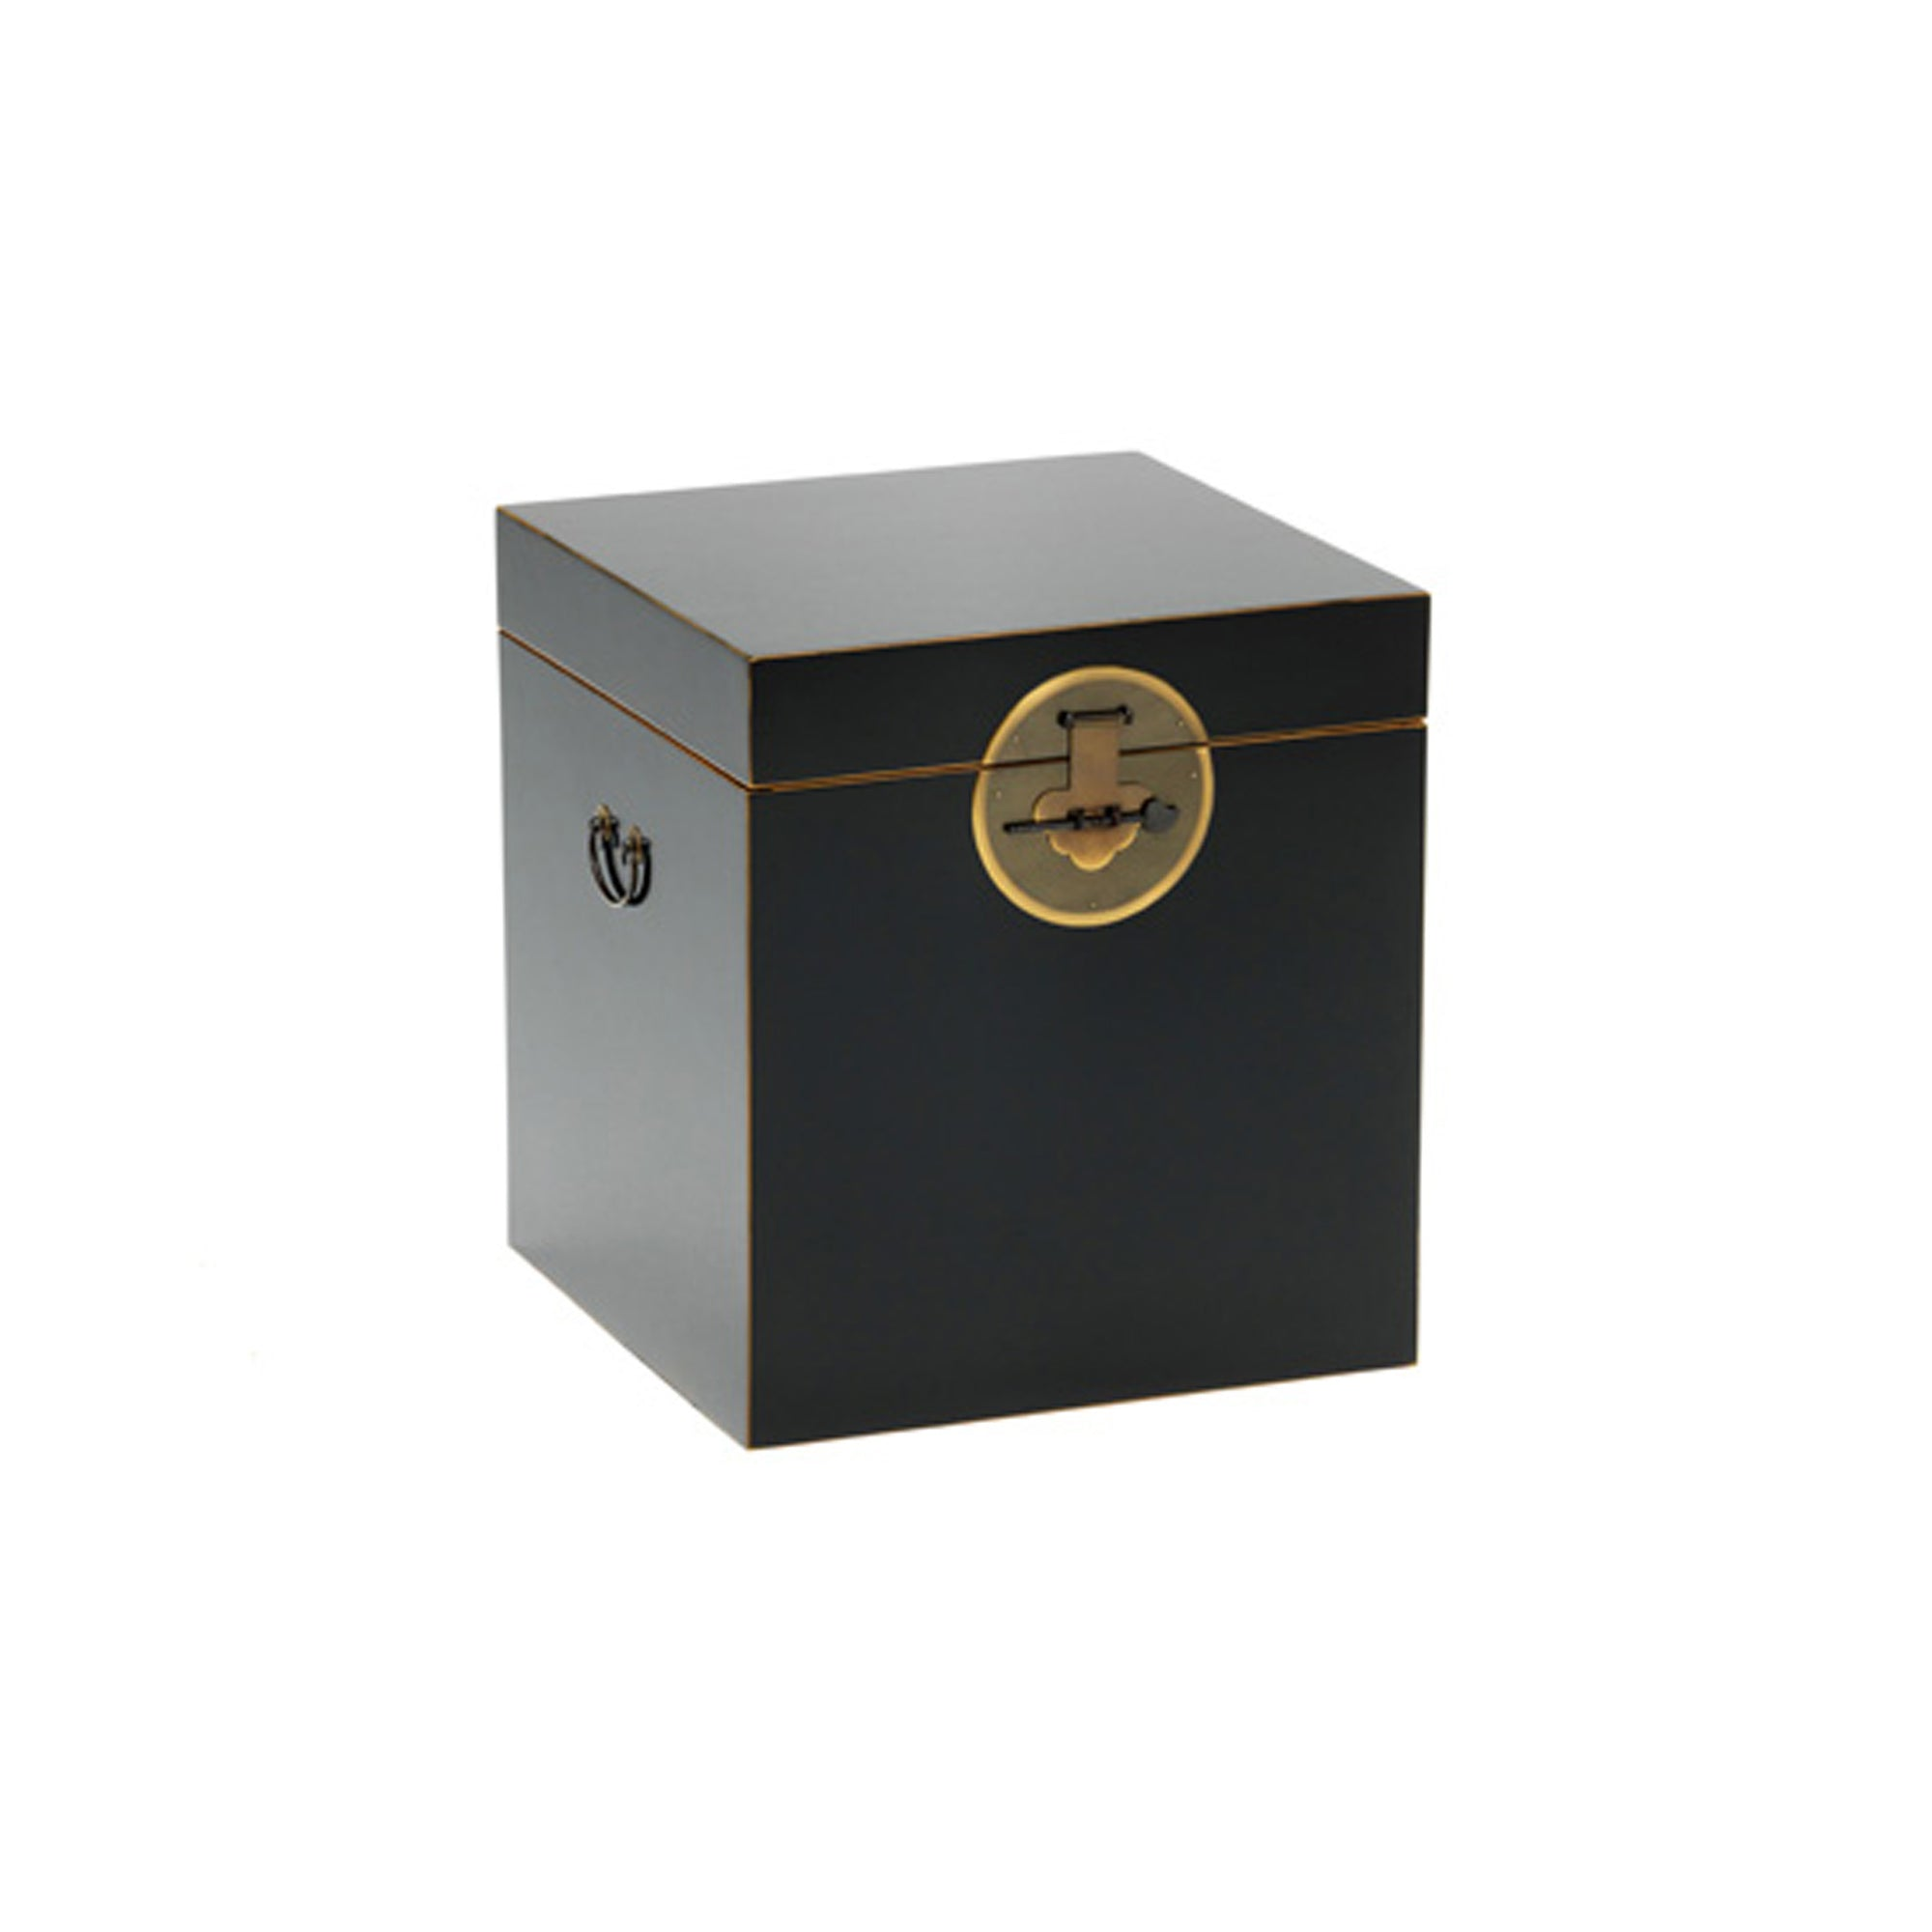 The Nine Schools Qing Black and Gilt Trunk by Roseland Furniture